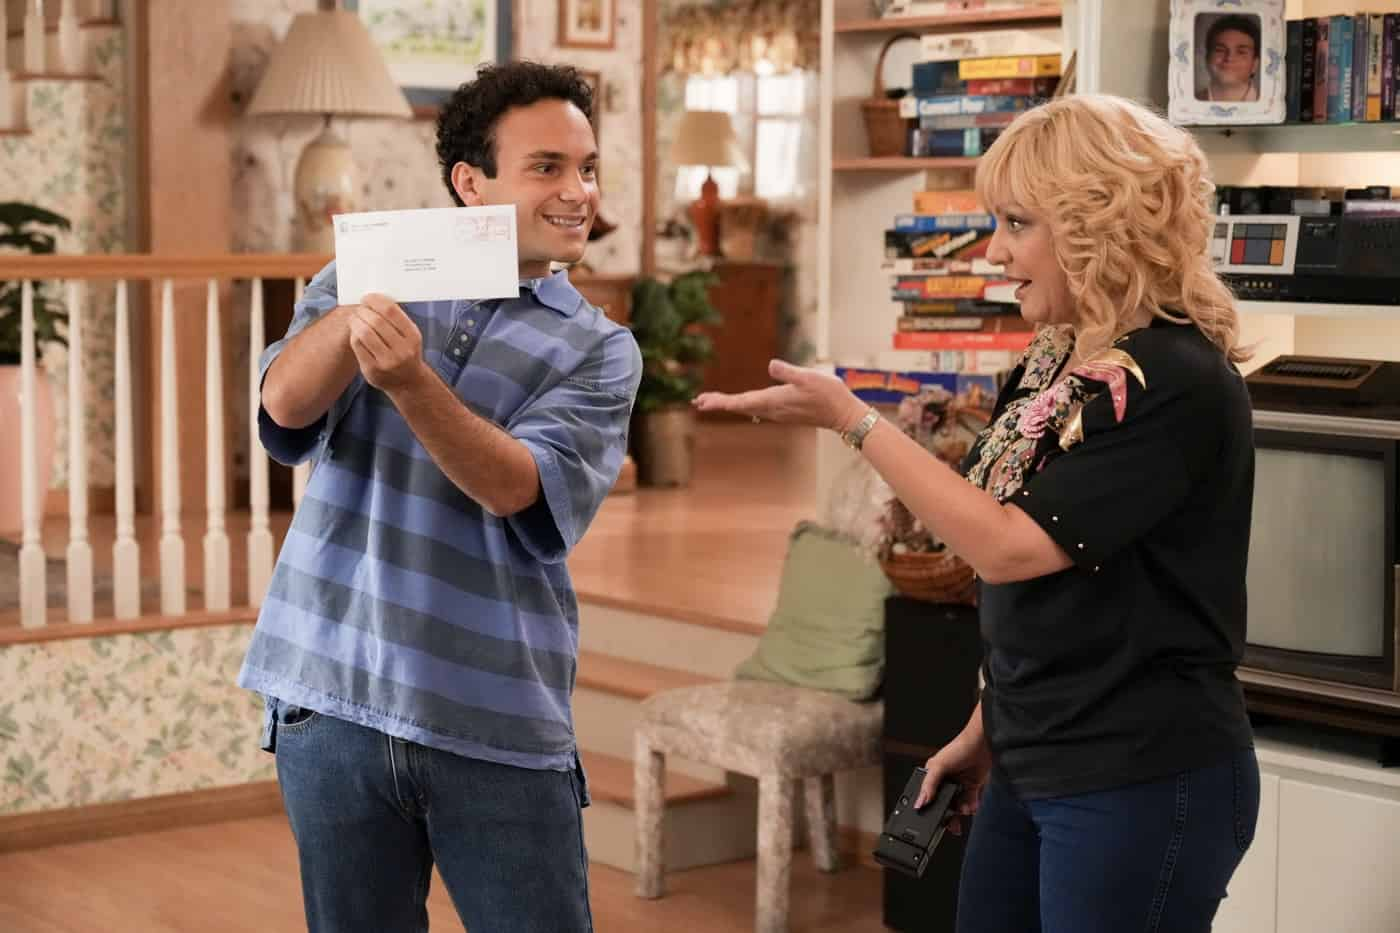 """THE GOLDBERGS Season 9 Episode 2 - """"Horse Play"""" – Adam is ready to leave the struggles of his high school years behind him but is distraught to discover he's been waitlisted at NYU while his girlfriend Brea has been accepted, along with his mom Beverly – who surprises everyone by admitting she applied to the same school. Adam courts the NYU dean of admissions, hoping she will change her mind on his deferral. Meanwhile, Erica, Geoff, Barry and Joanne create their own plan to convince Geoff's dad, Lou, that Erica had nothing to do with a past incident involving his prized porcelain horses on a new episode of """"The Goldbergs,"""" airing WEDNESDAY, SEPT. 29 (8:00-8:30 p.m. EDT), on ABC. (ABC/Scott Everett White) TROY GENTILE, WENDI MCLENDON-COVEY"""